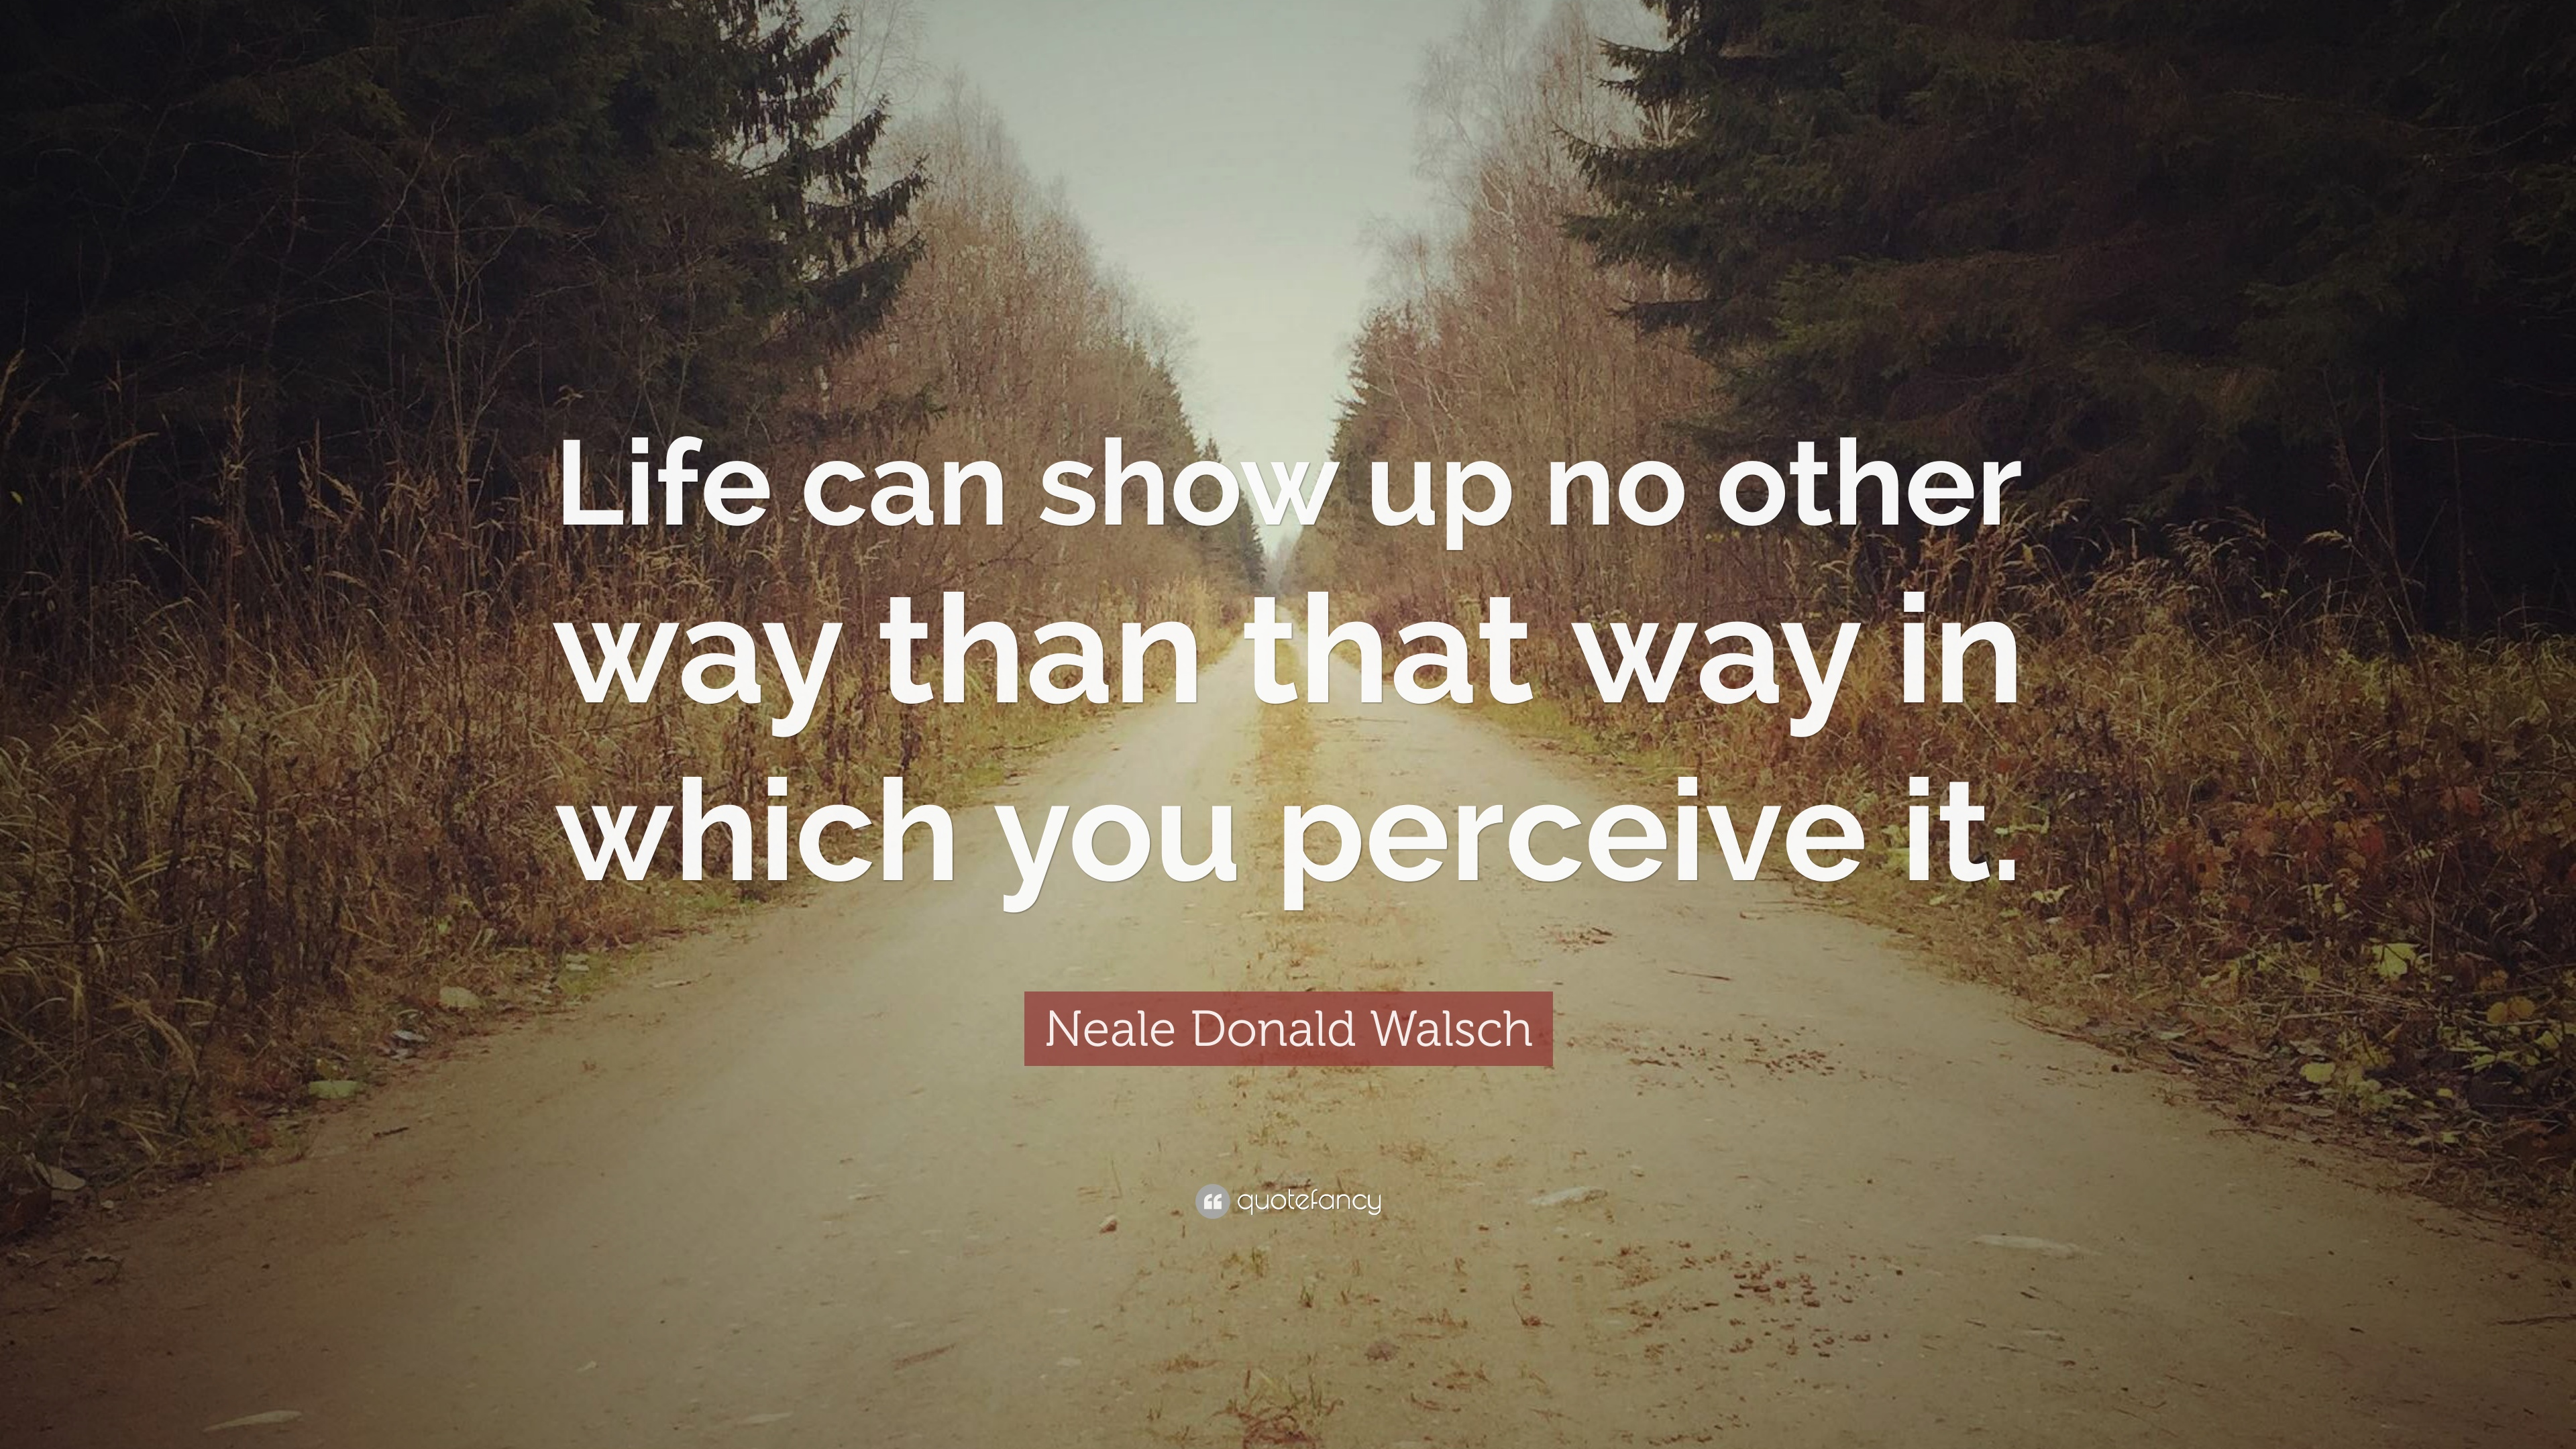 322261-neale-donald-walsch-quote-life-can-show-up-no-other-way-than-that